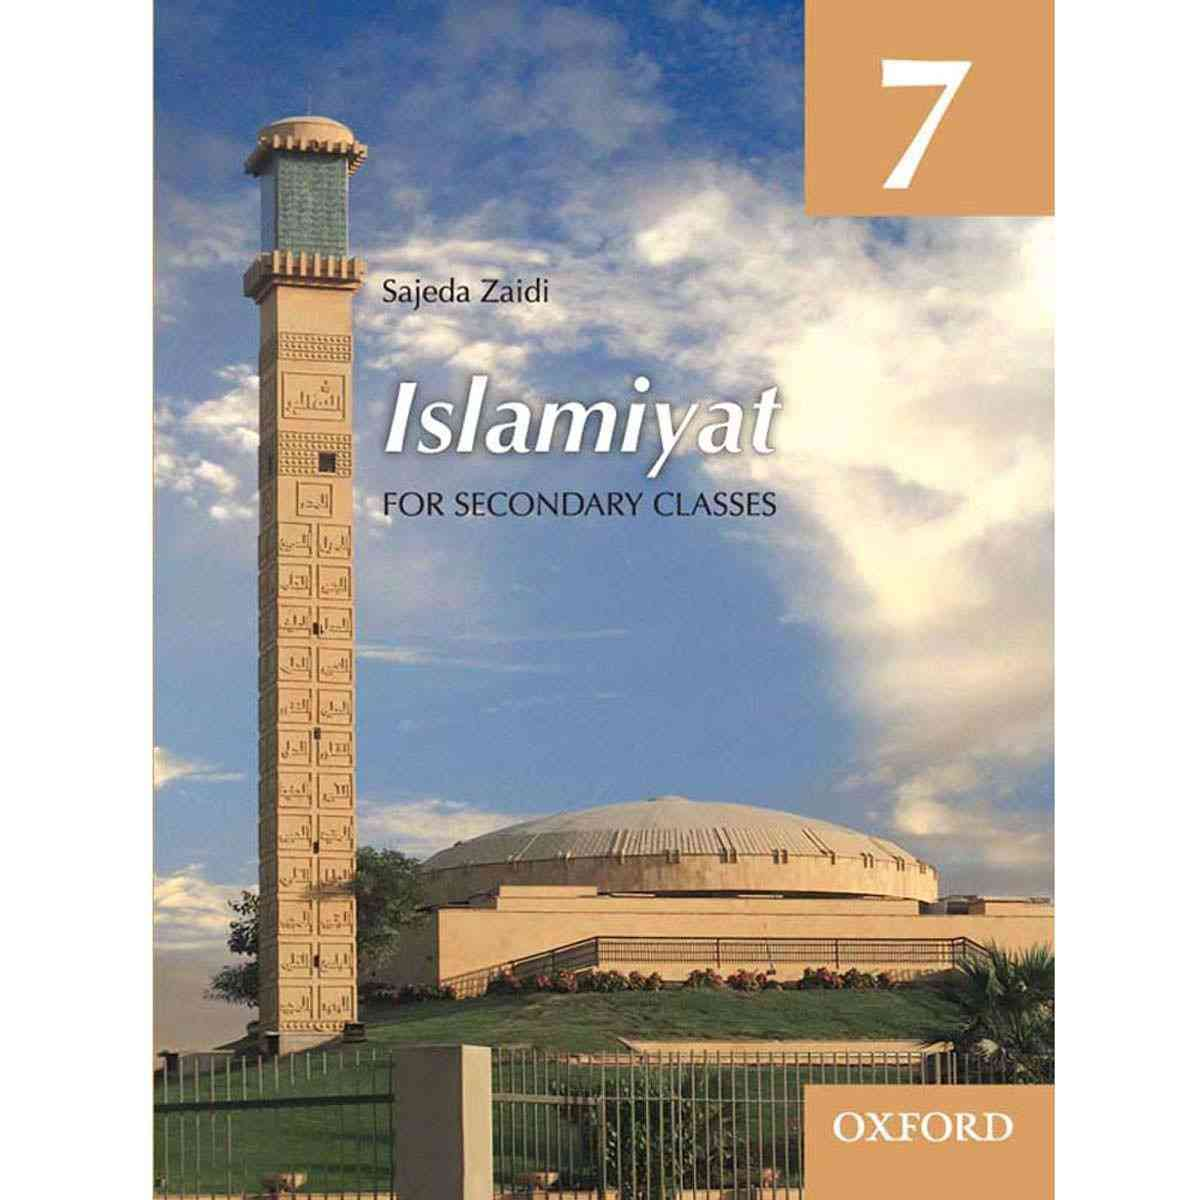 Oxford Books Islamiyat Book 7